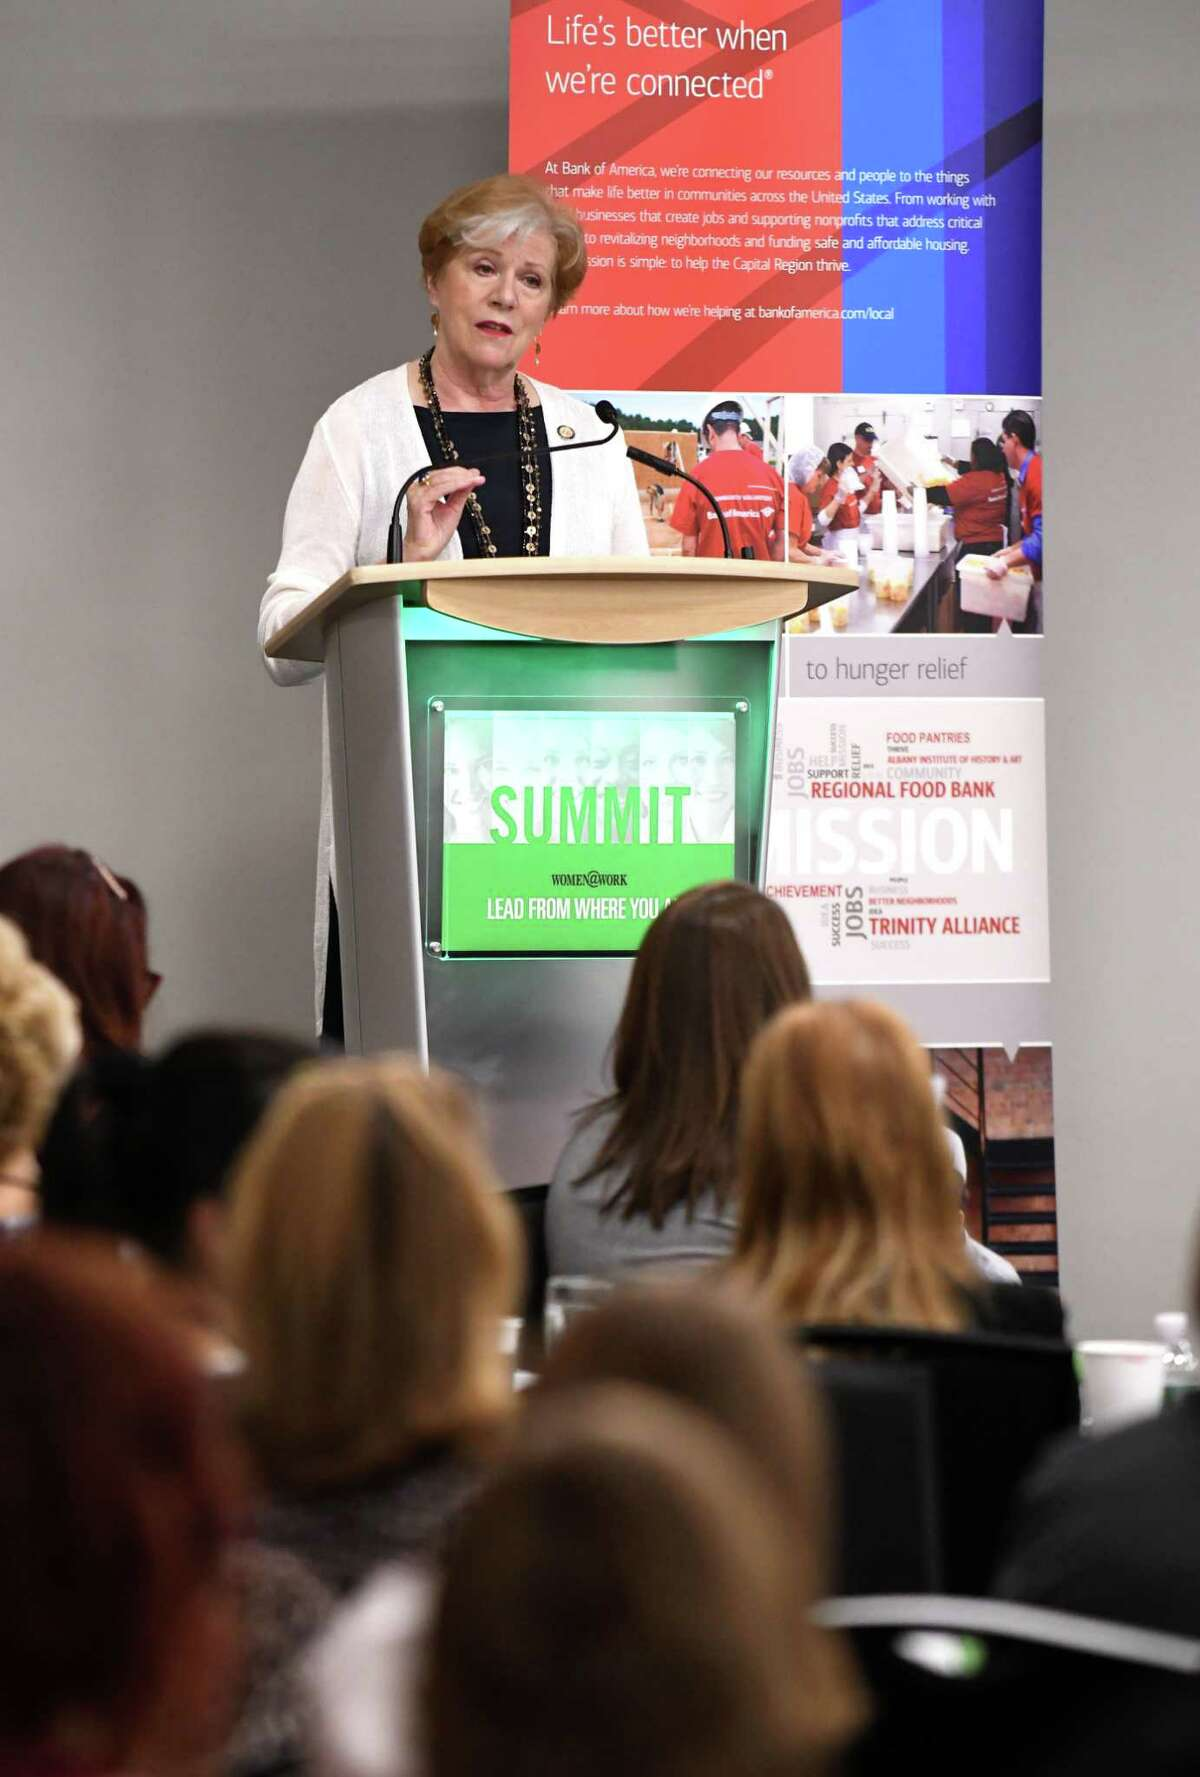 Labor Department Commissioner Roberta Reardon speaks during the Women@Work Summit held at the Hearst Media Center on Friday, June 15, 2018, in Colonie, N.Y. The event brought together more than 150 women from across the Capital Region for keynote speakers and panel discussion related to leadership theme: Lead from Where You Are. (Will Waldron/Times Union)